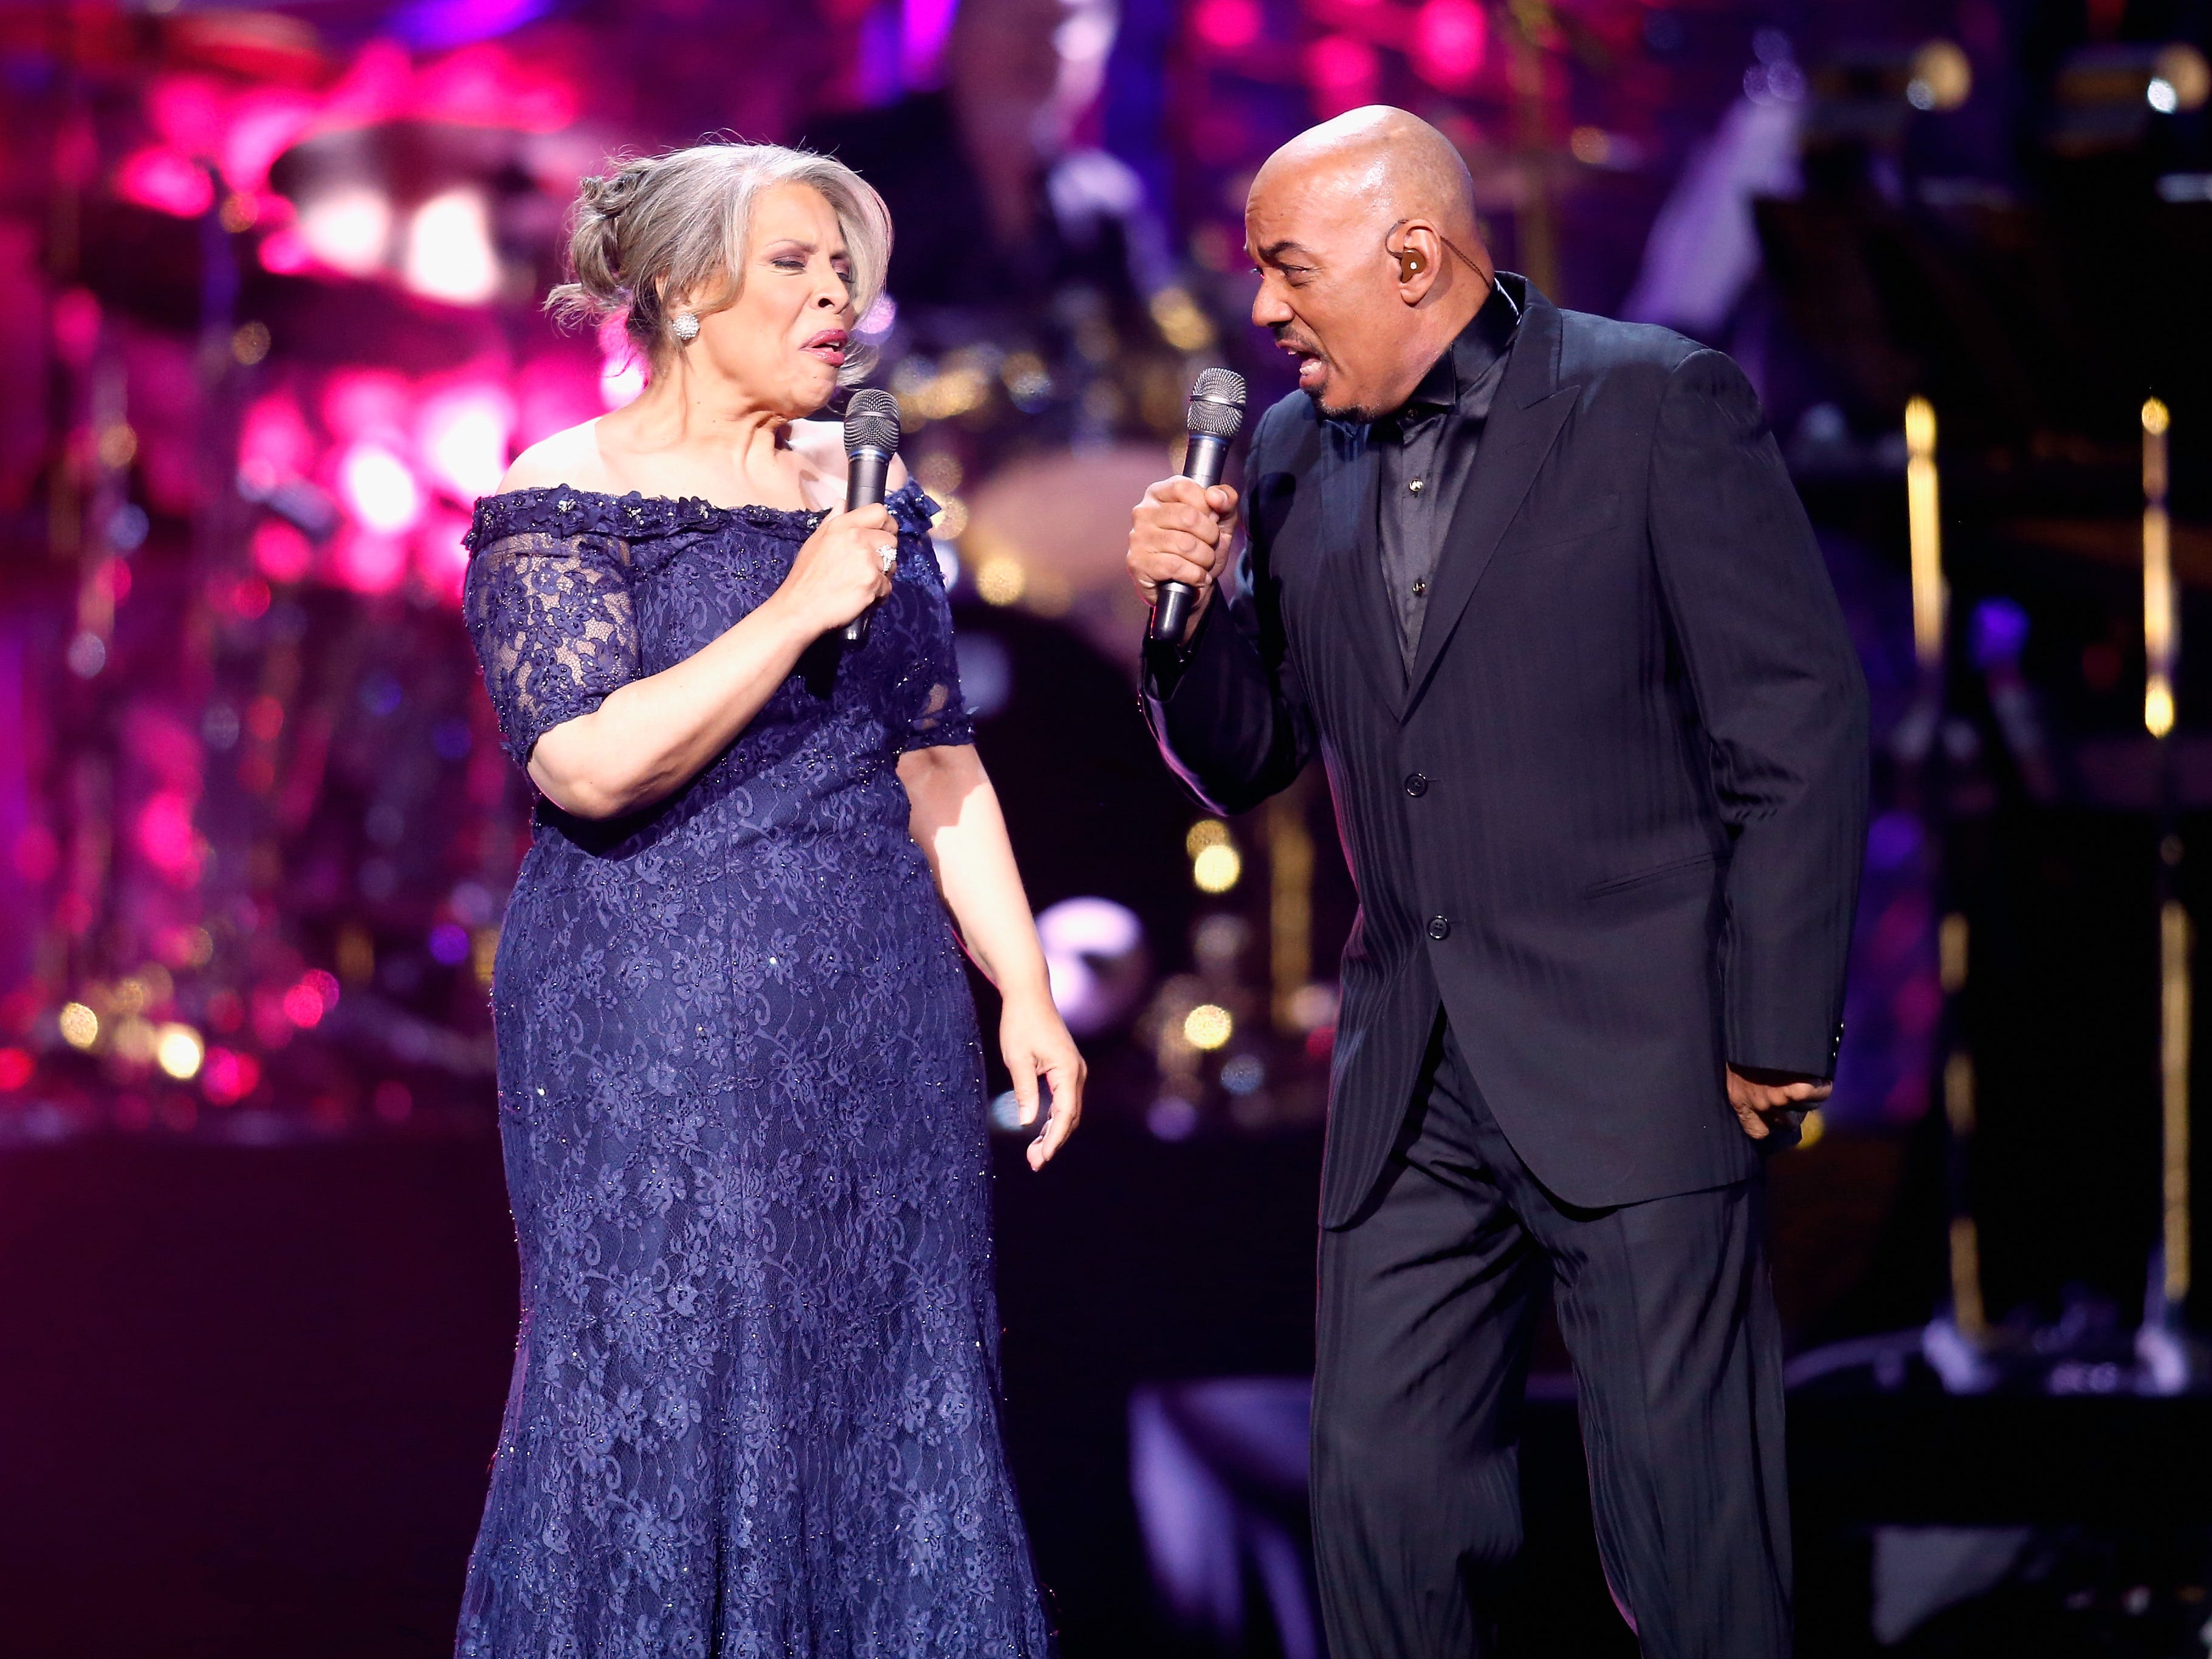 """Recording artists Patti Austin and James Ingram perform during the 17th annual Keep Memory Alive """"Power of Love Gala"""" benefit in Las Vegas, April 13, 2013."""